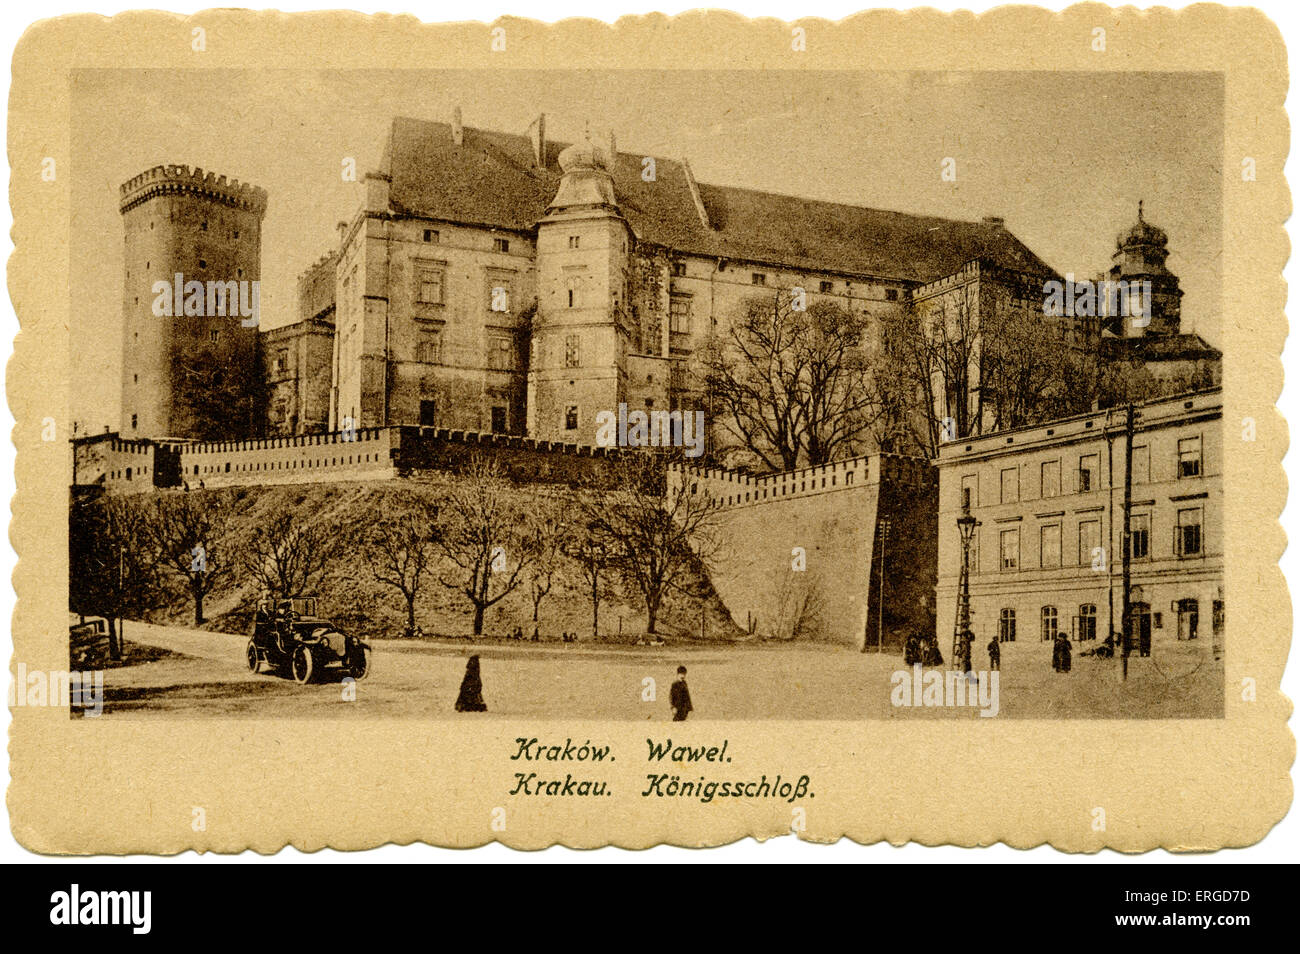 Wawel Castle, Krakow, 1918. Built at the request of Casimir III and subsequently rebuilt during 14th century. Post - Stock Image